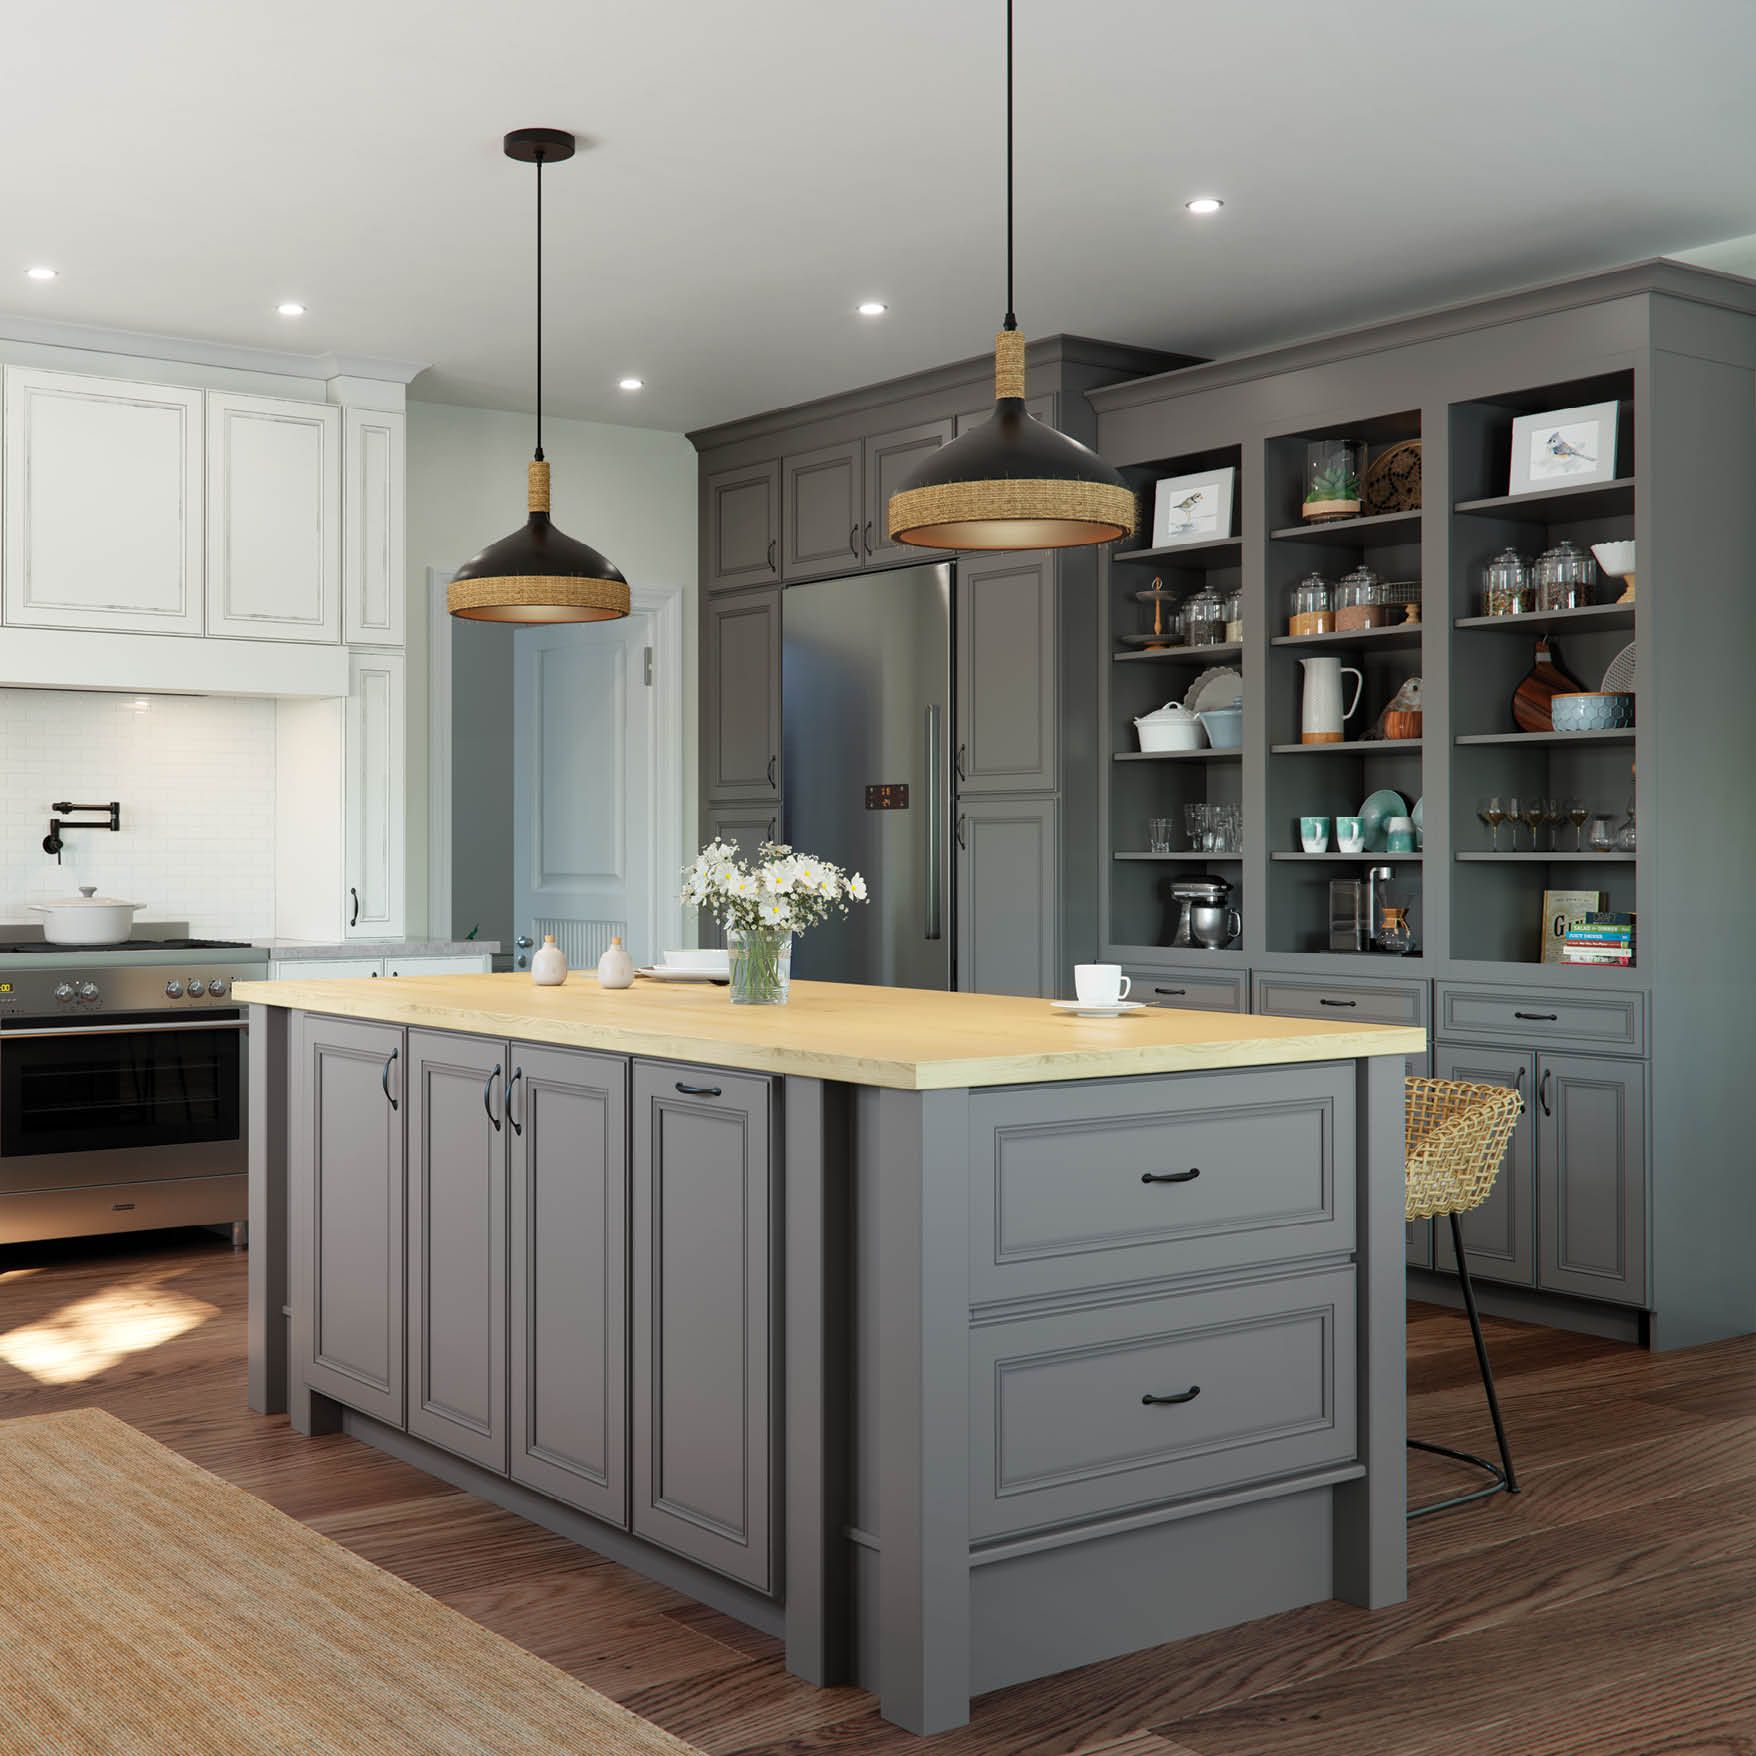 Dramatic 750 Painted Boulder Cabinets Evoke Memories Of The Foggy Mornings On Nantucket This Seafaring Style Is Fil Kitchen Inspirations Cabinet Cabinet Doors